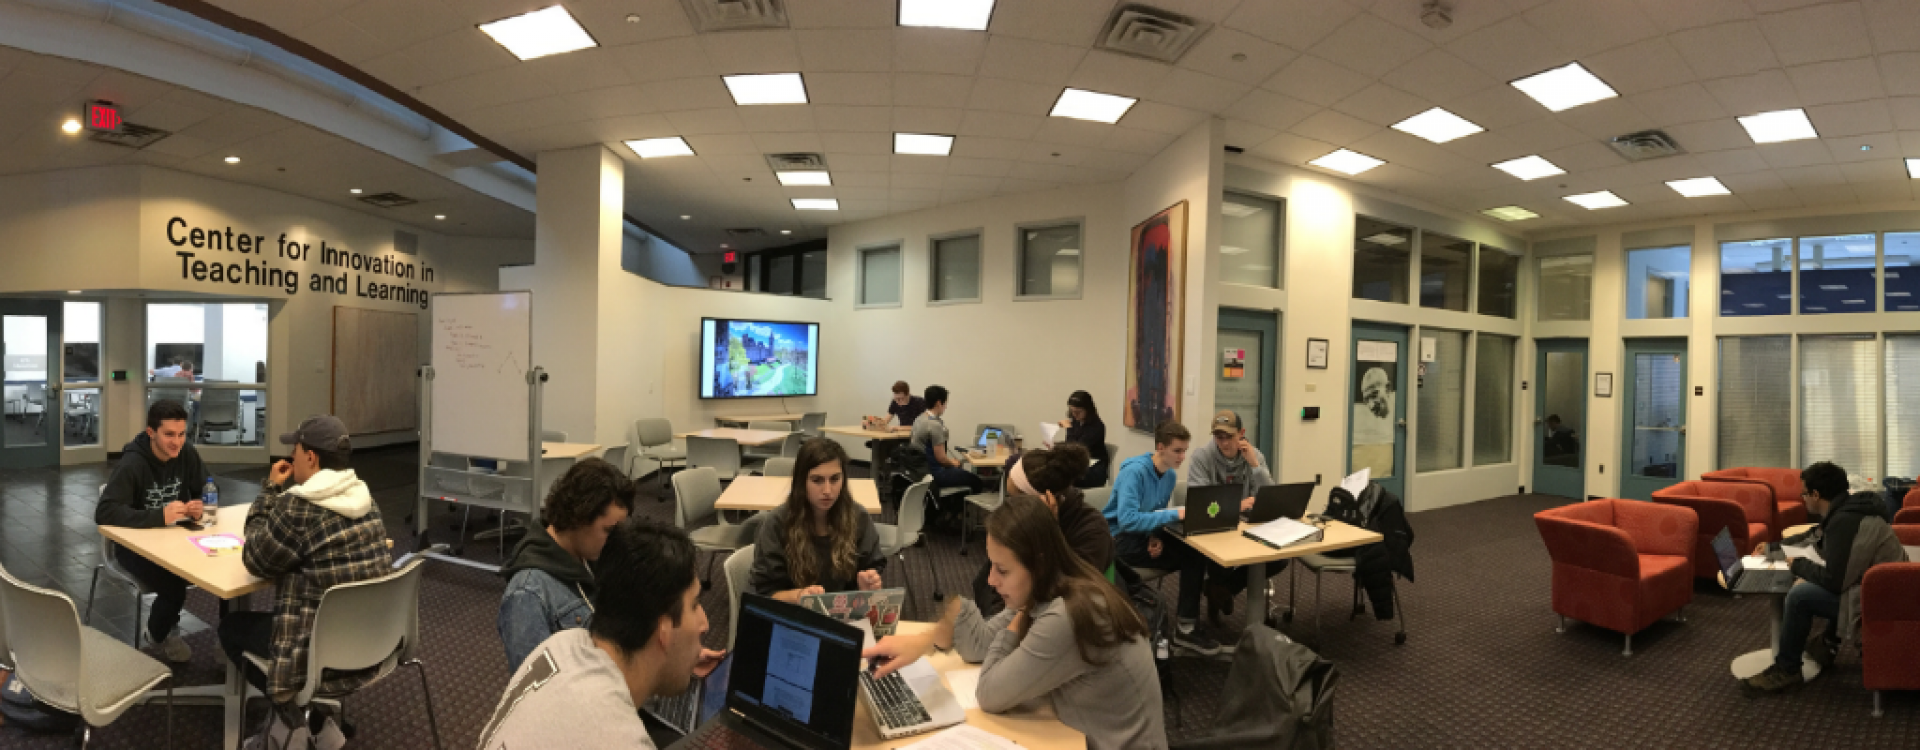 Panorama of students working in CITL common area